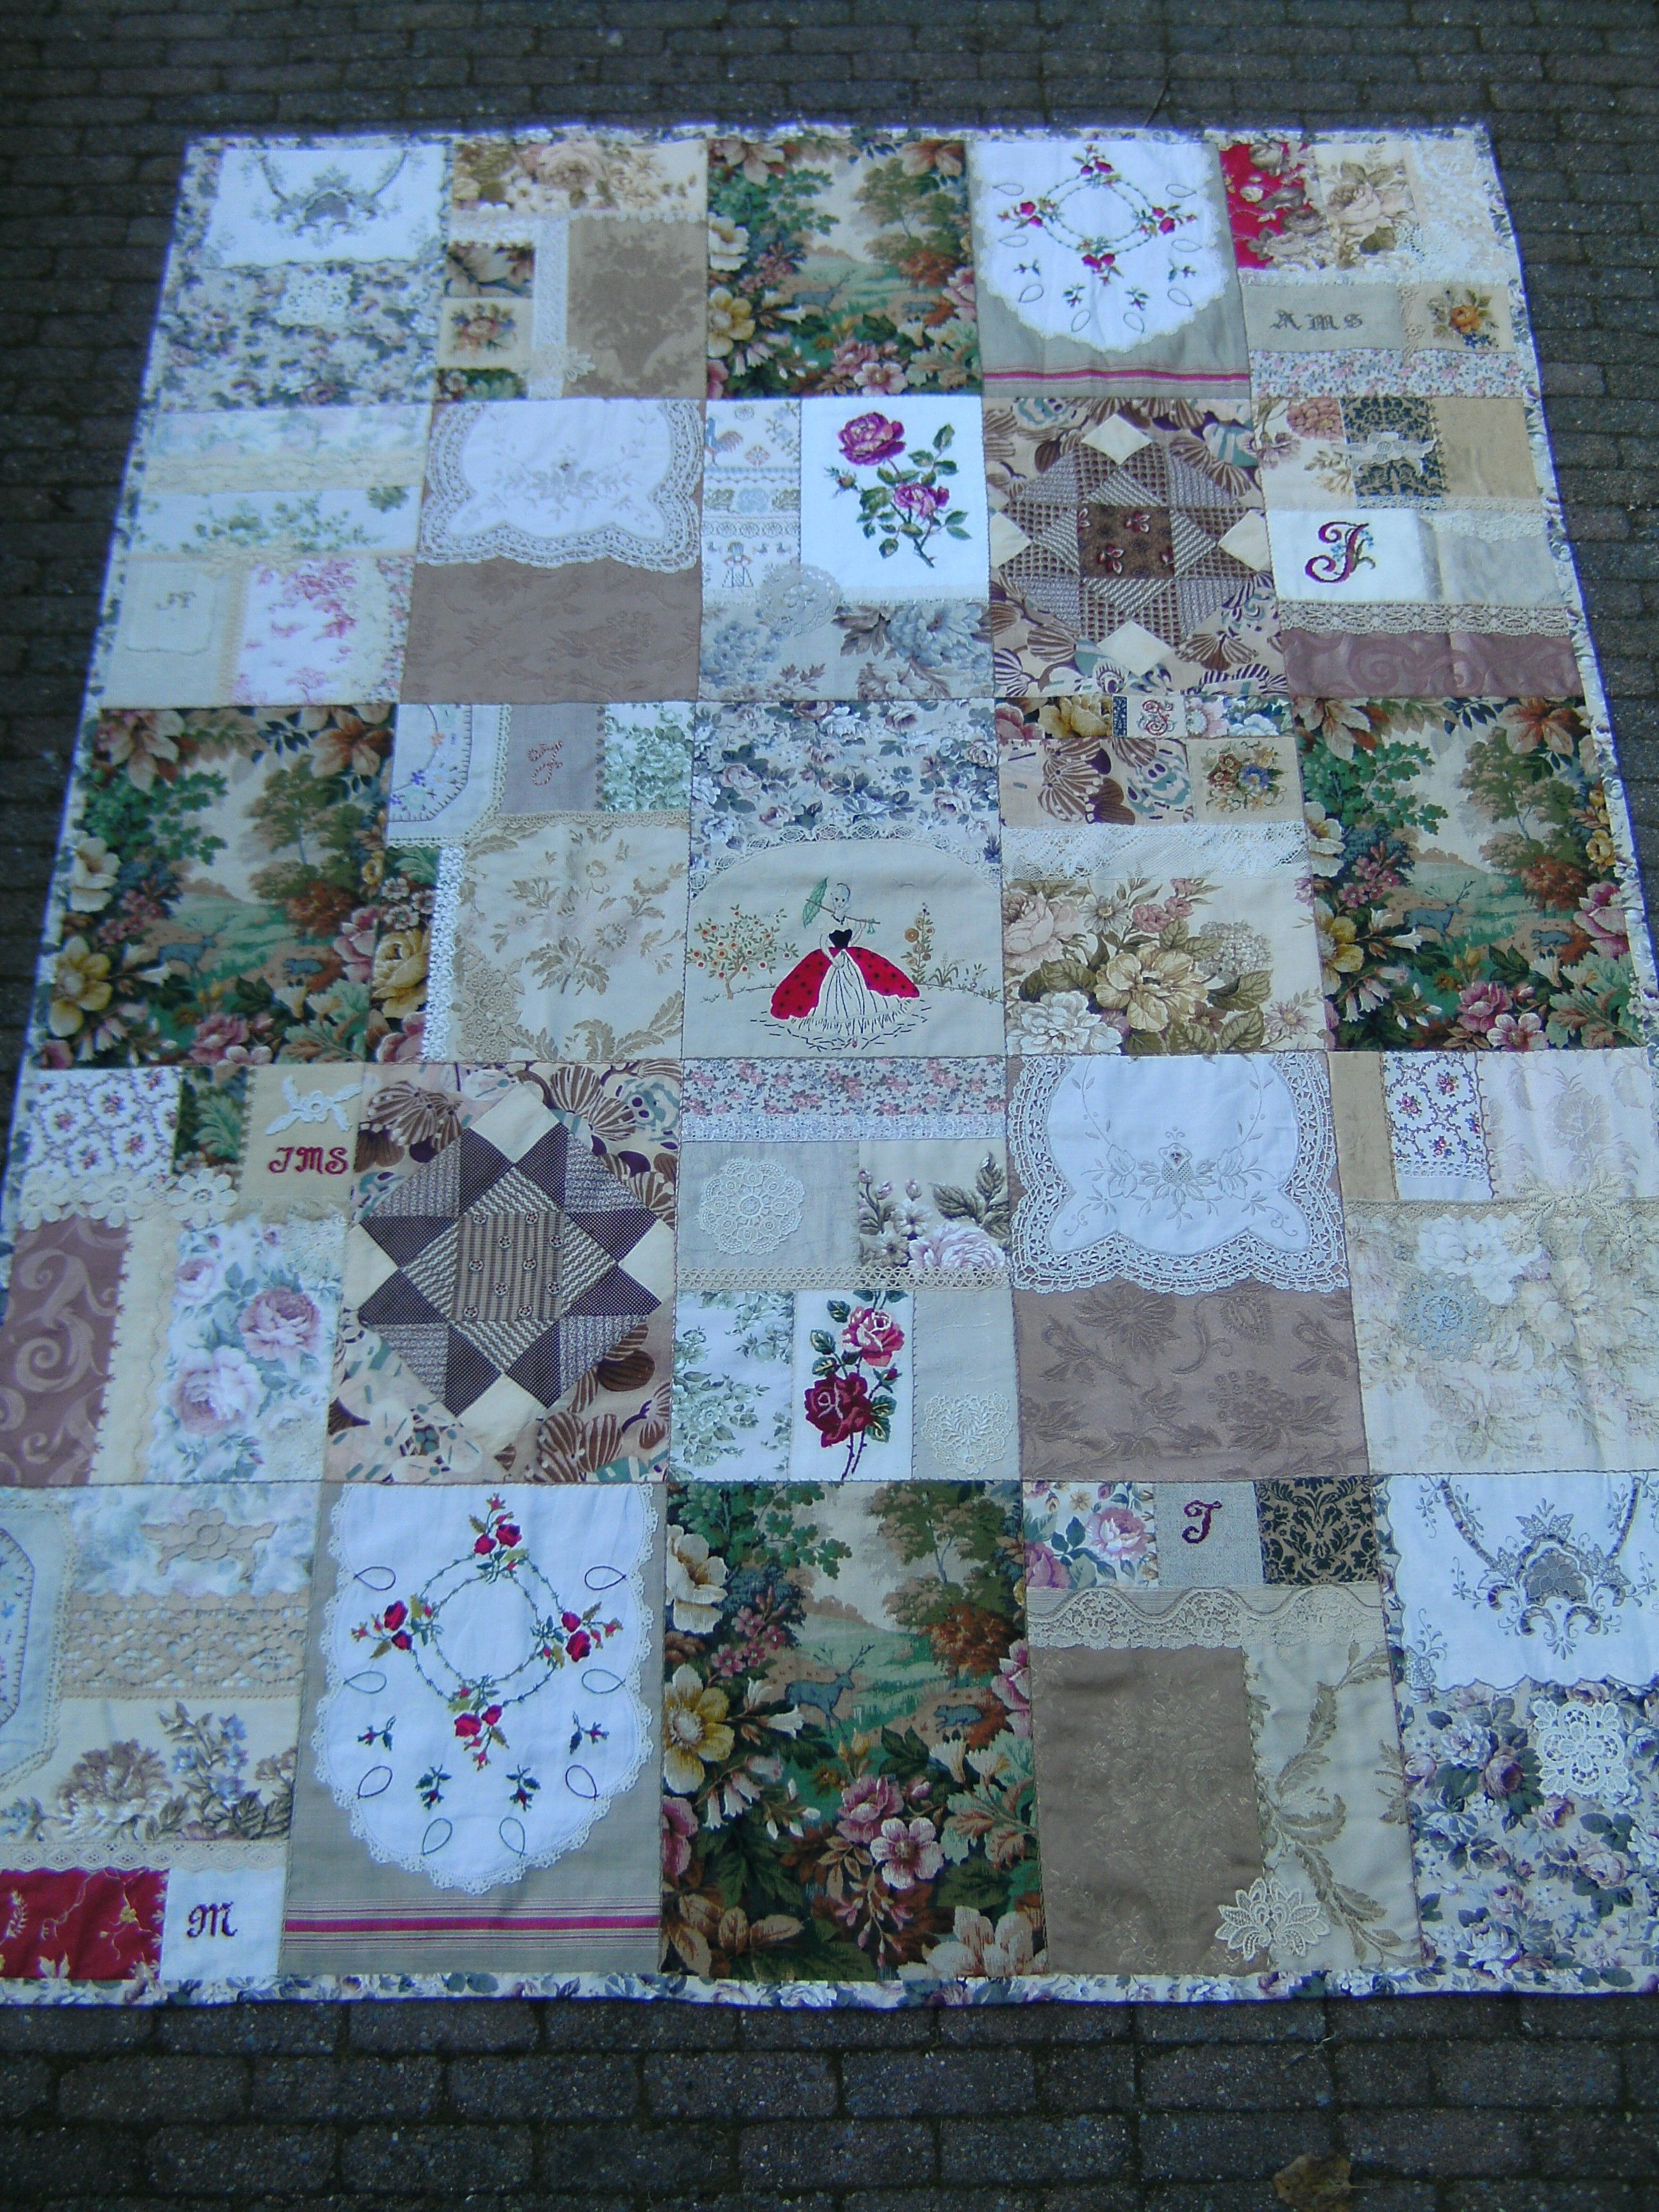 Quilt with sanderson fabric, lace, embroideries, damask fabric ... : sanderson quilts - Adamdwight.com